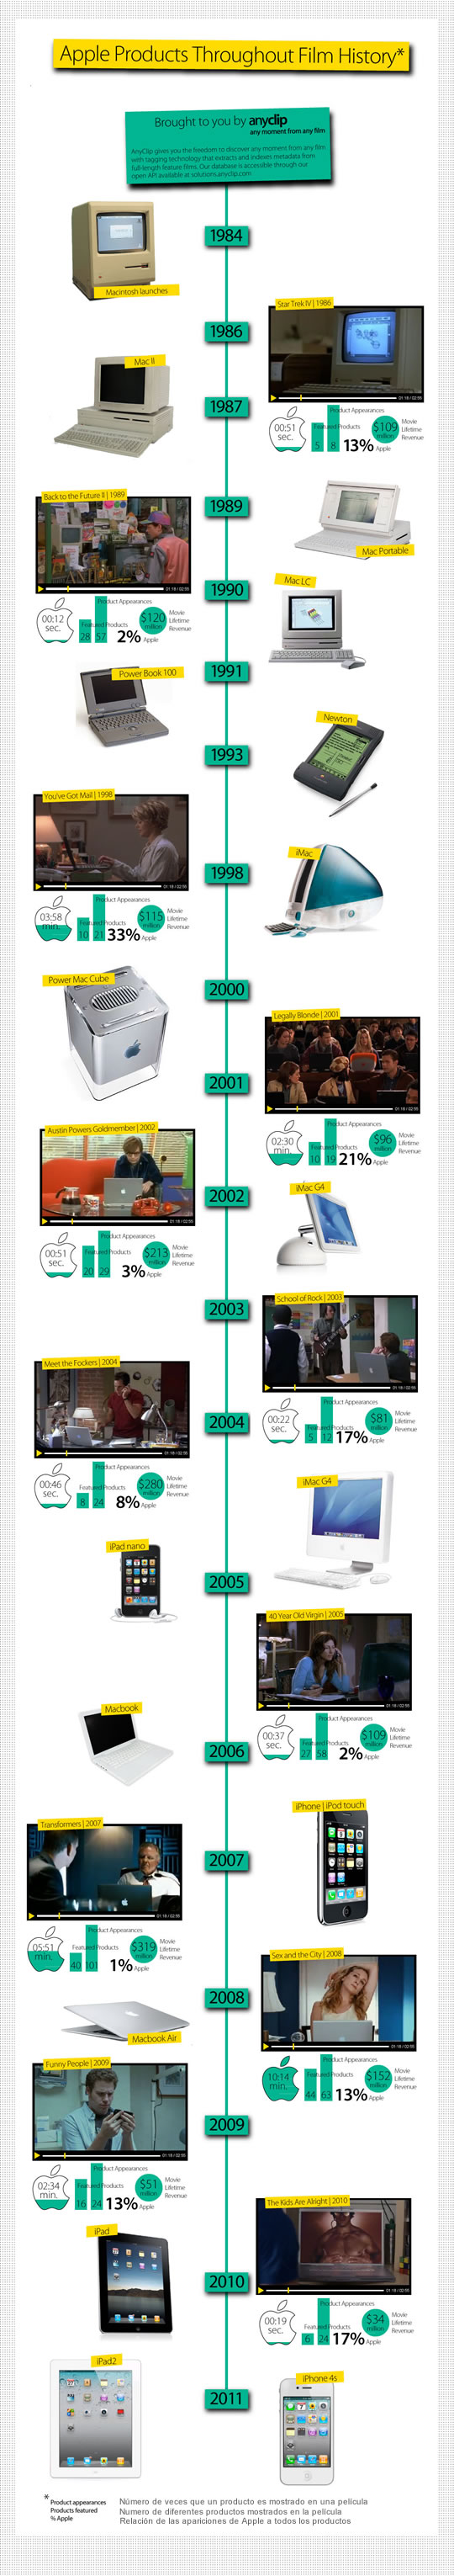 Historia productos Apple en Cine